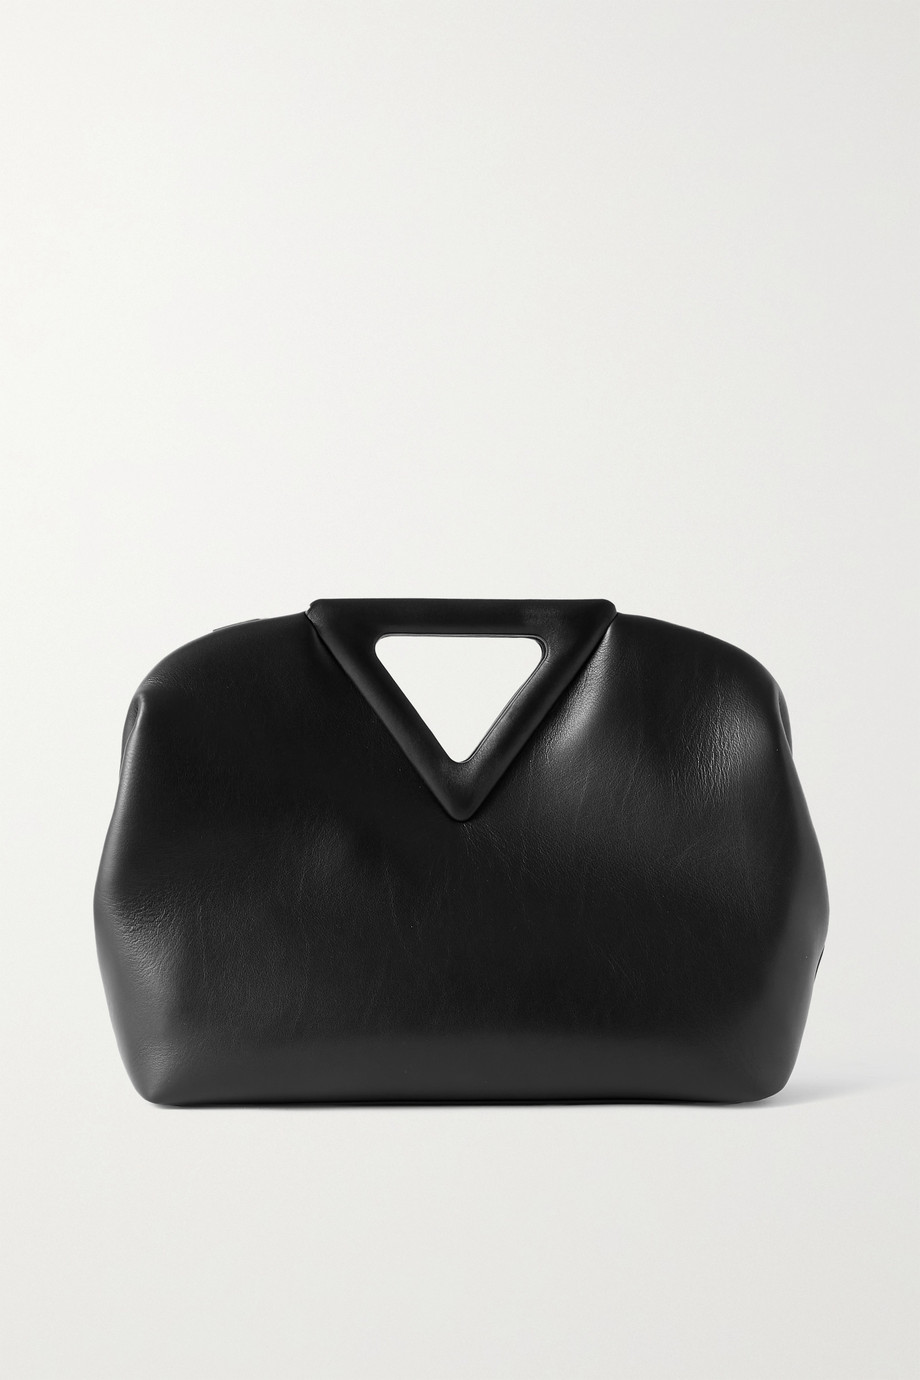 보테가 베네타 Bottega Veneta Point medium leather tote,Black